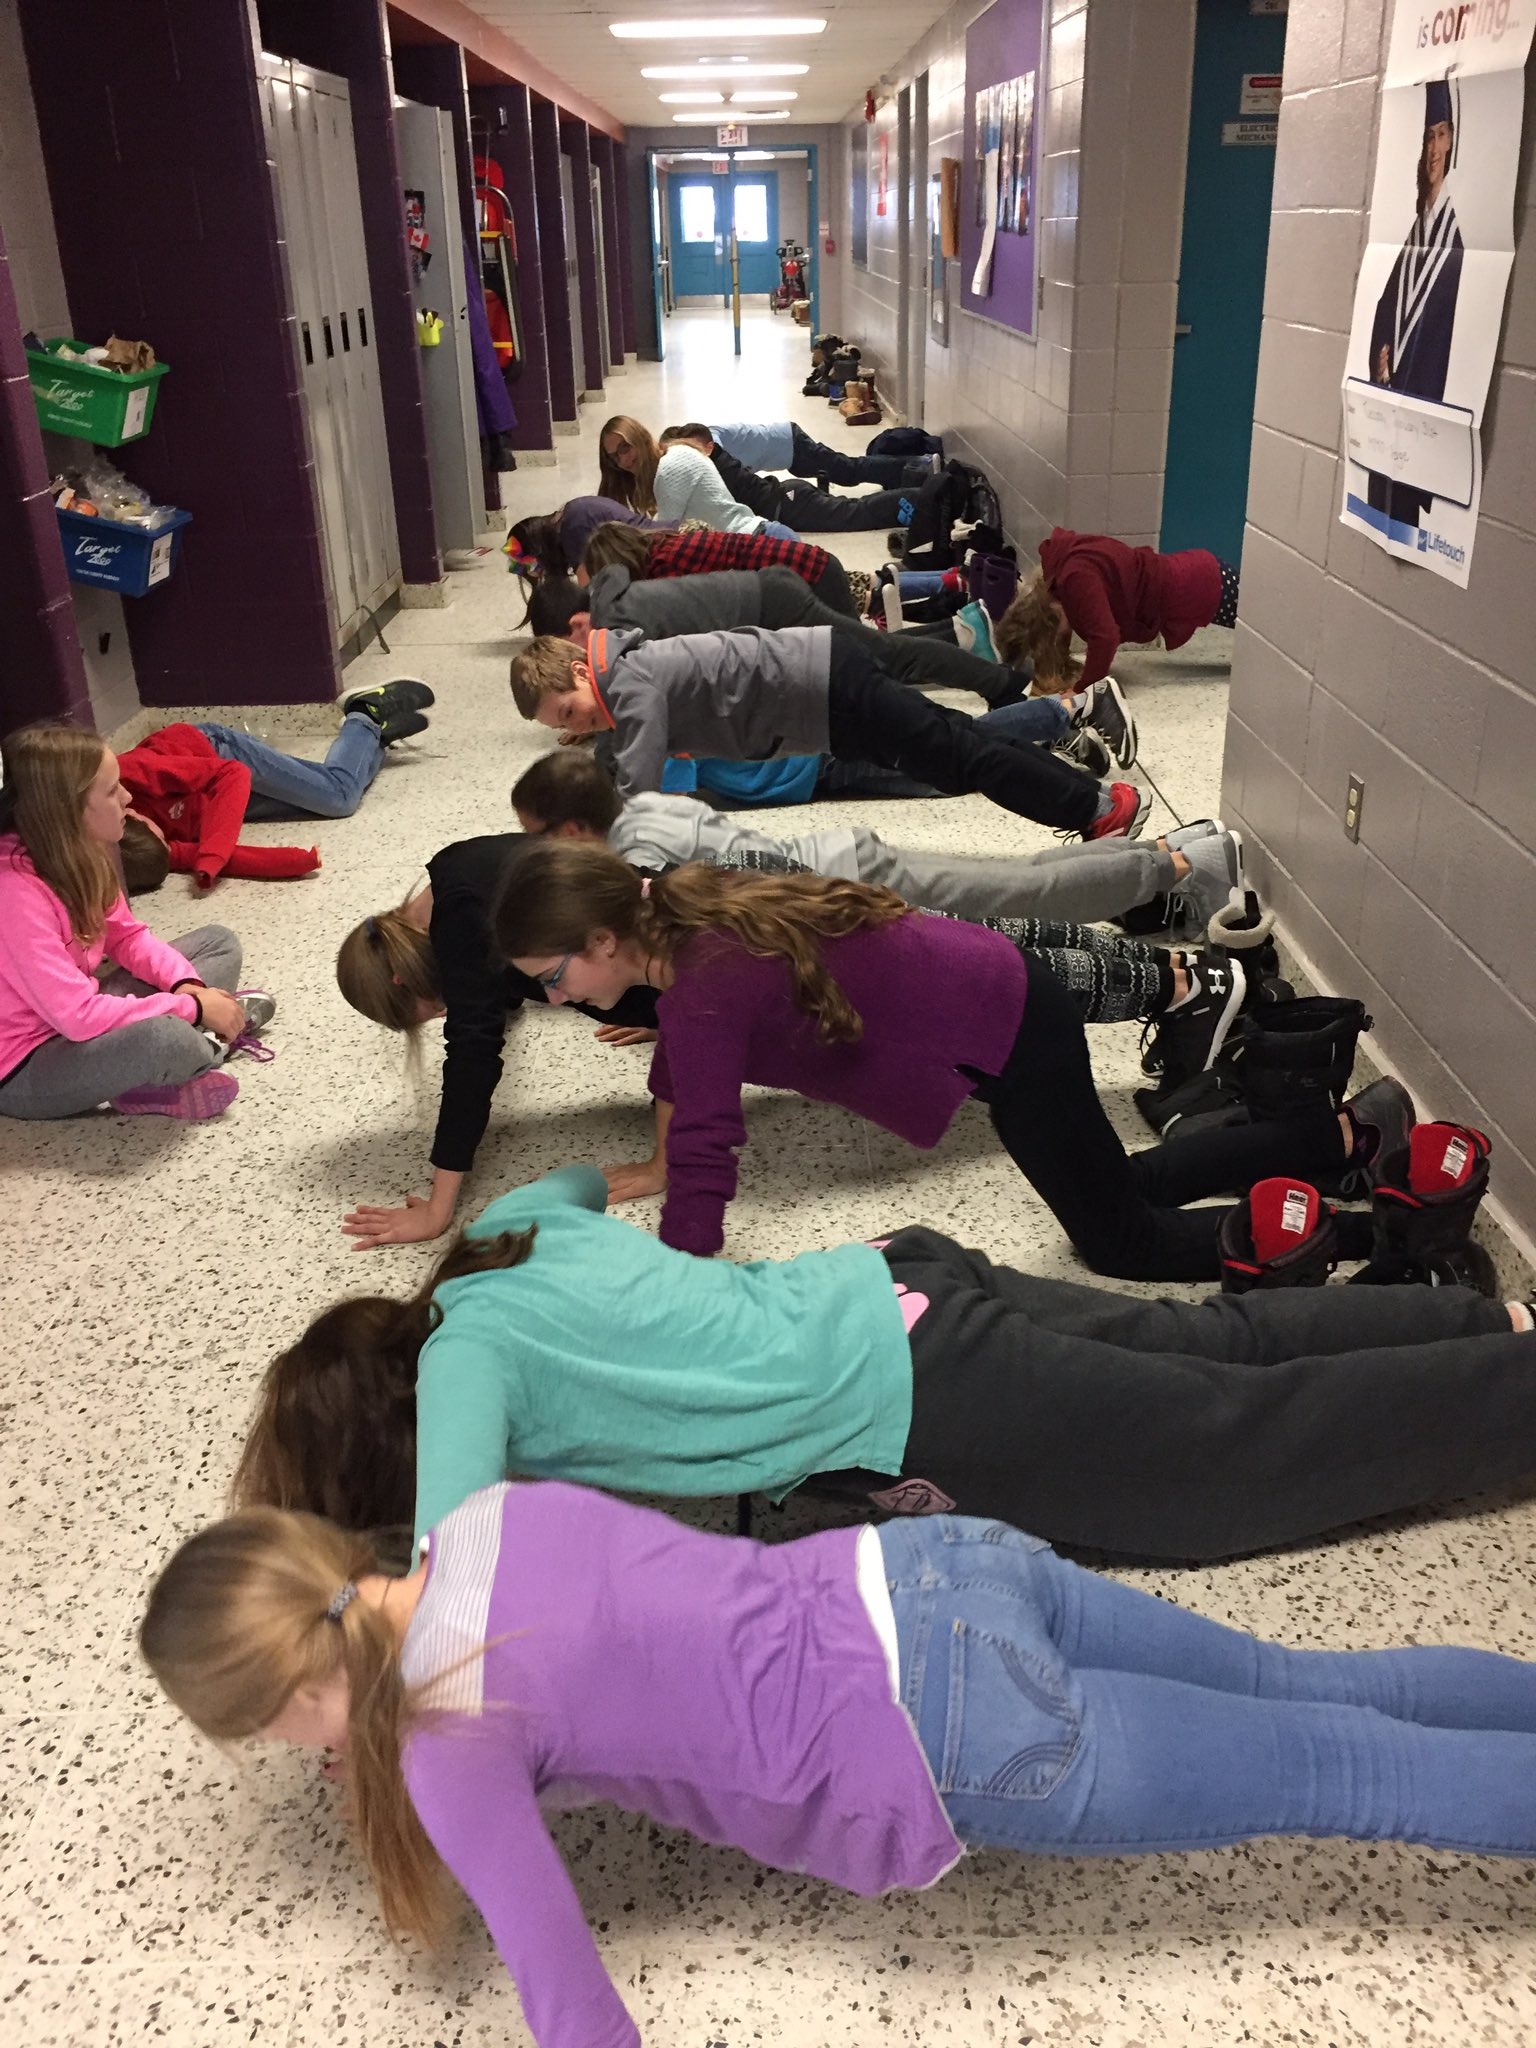 Some much needed DPA in our grade 6 class to break up a long afternoon @SMCDSB_MMO @SMCDSB #PhysicalActivity! https://t.co/U9QZsQmWo2